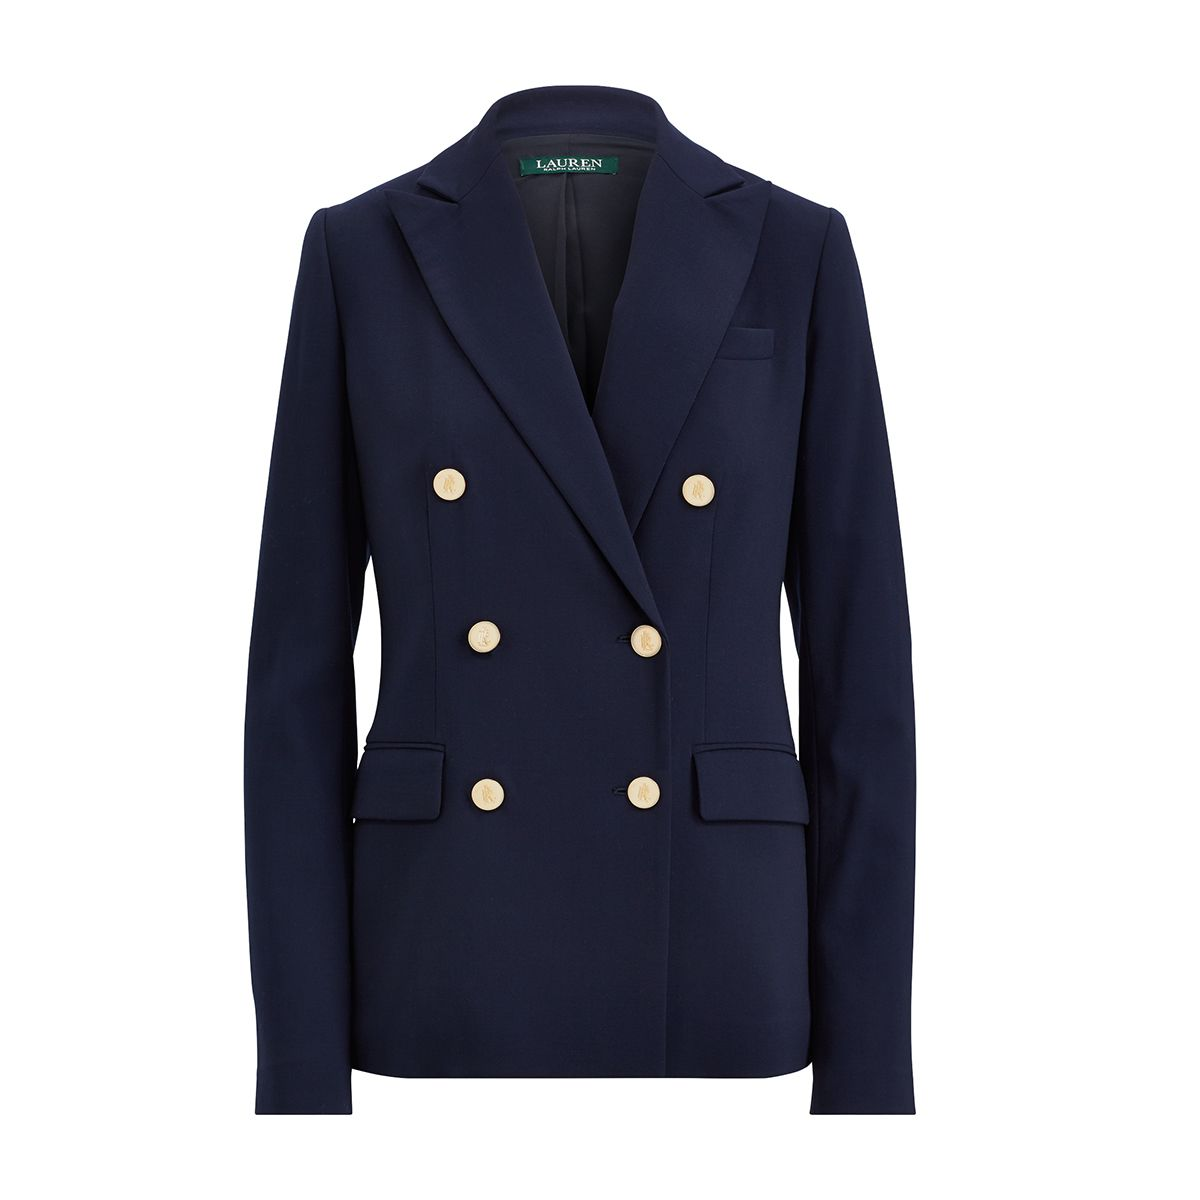 0263aa842ec8d4 Lauren Ralph Lauren Jackets for Women - Macy's